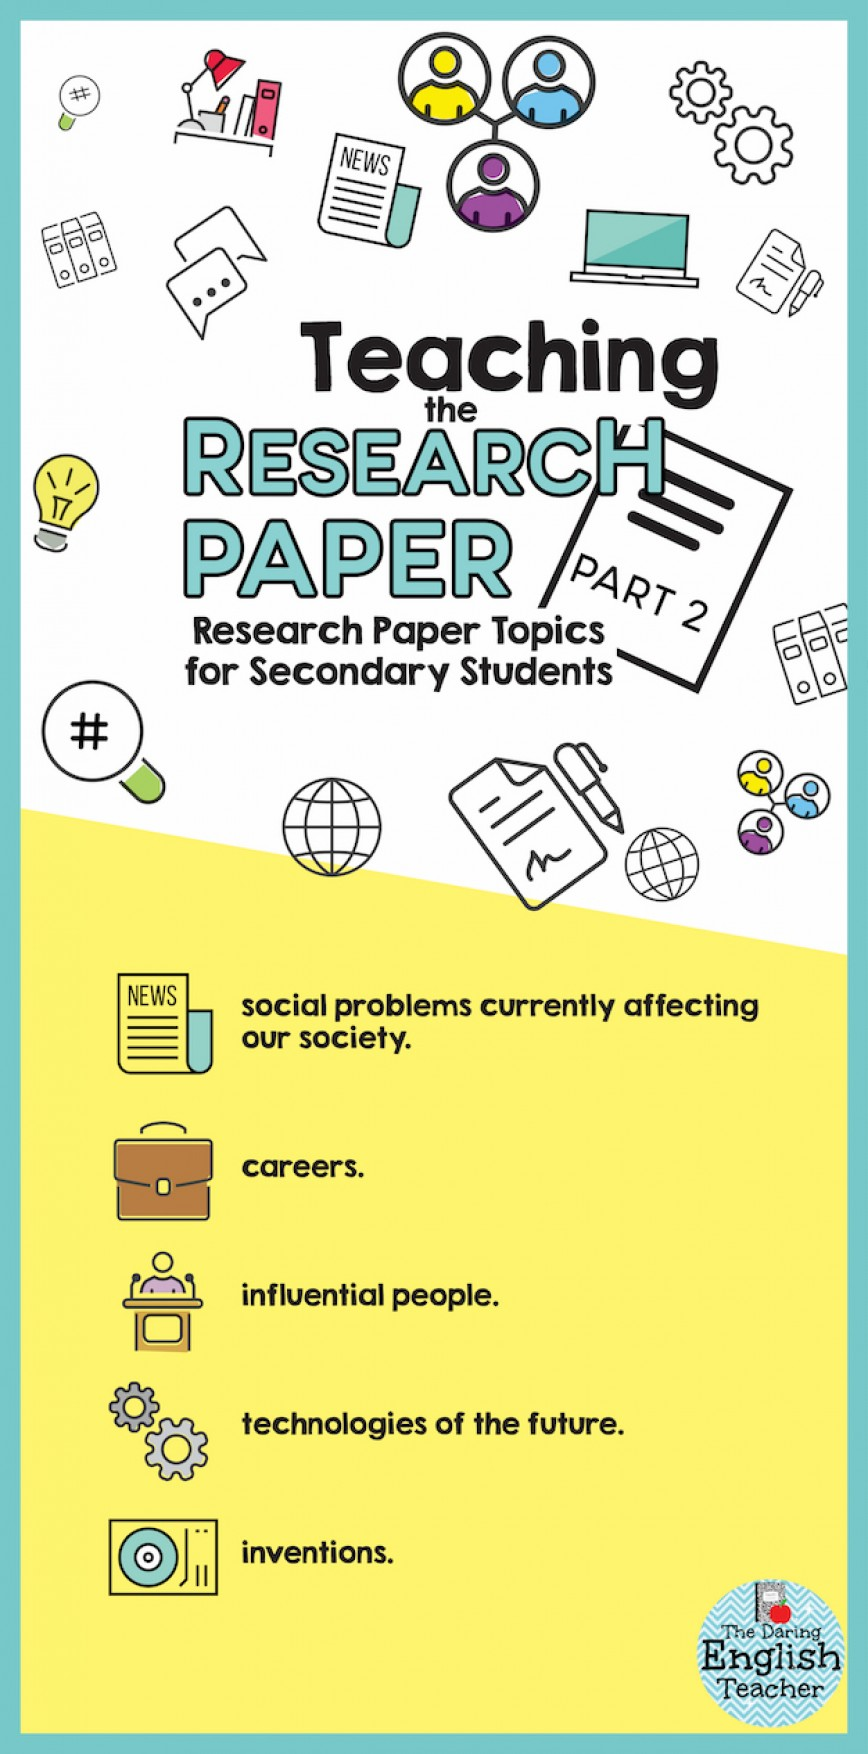 020 Infographic2bp22b2 Research Paper Topic For Unusual A Topics On Education Frankenstein Special 868